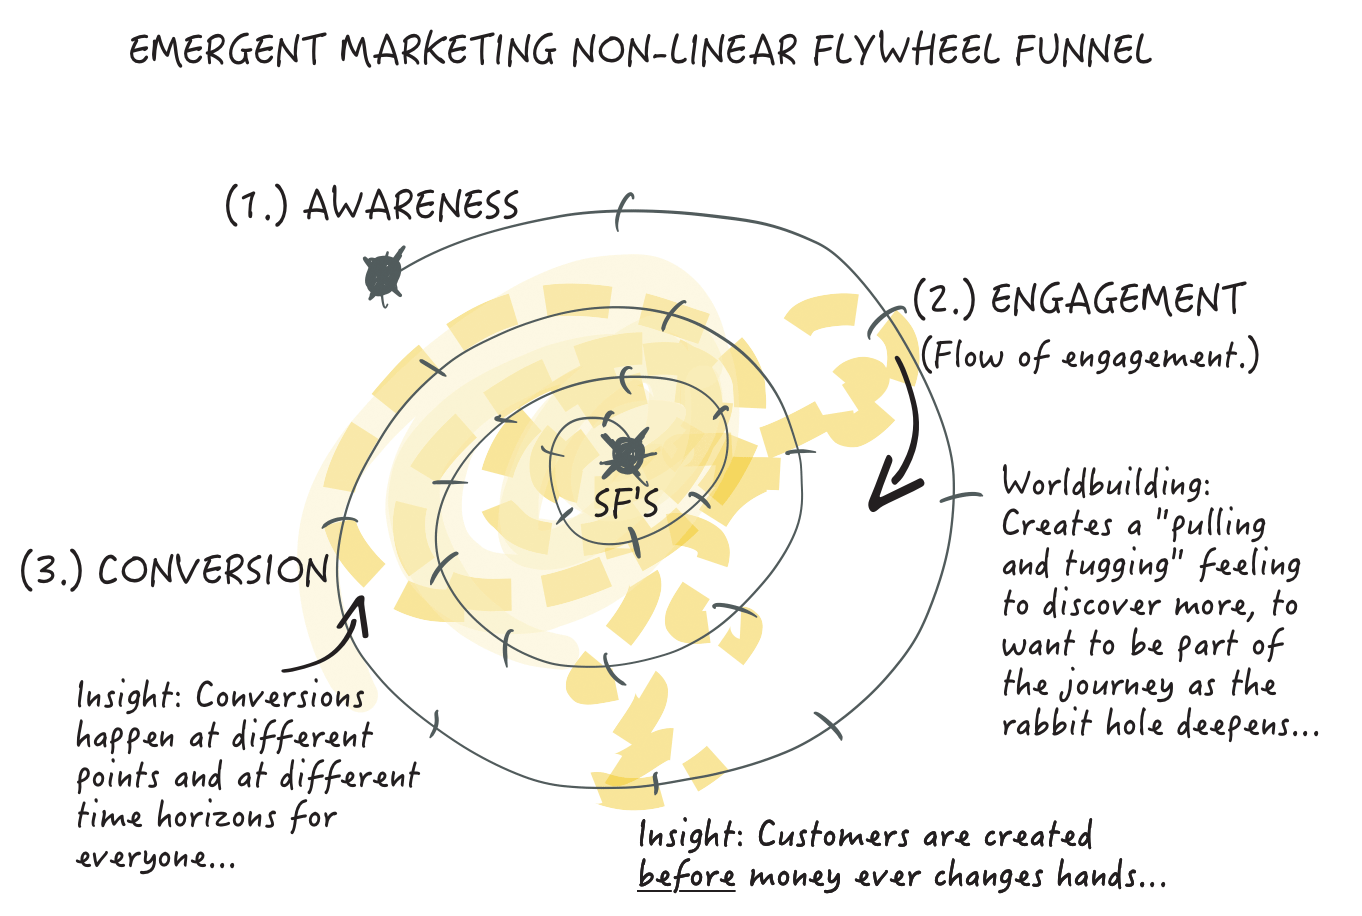 Emergent Marketing Non-Linear Flywheel Funnel